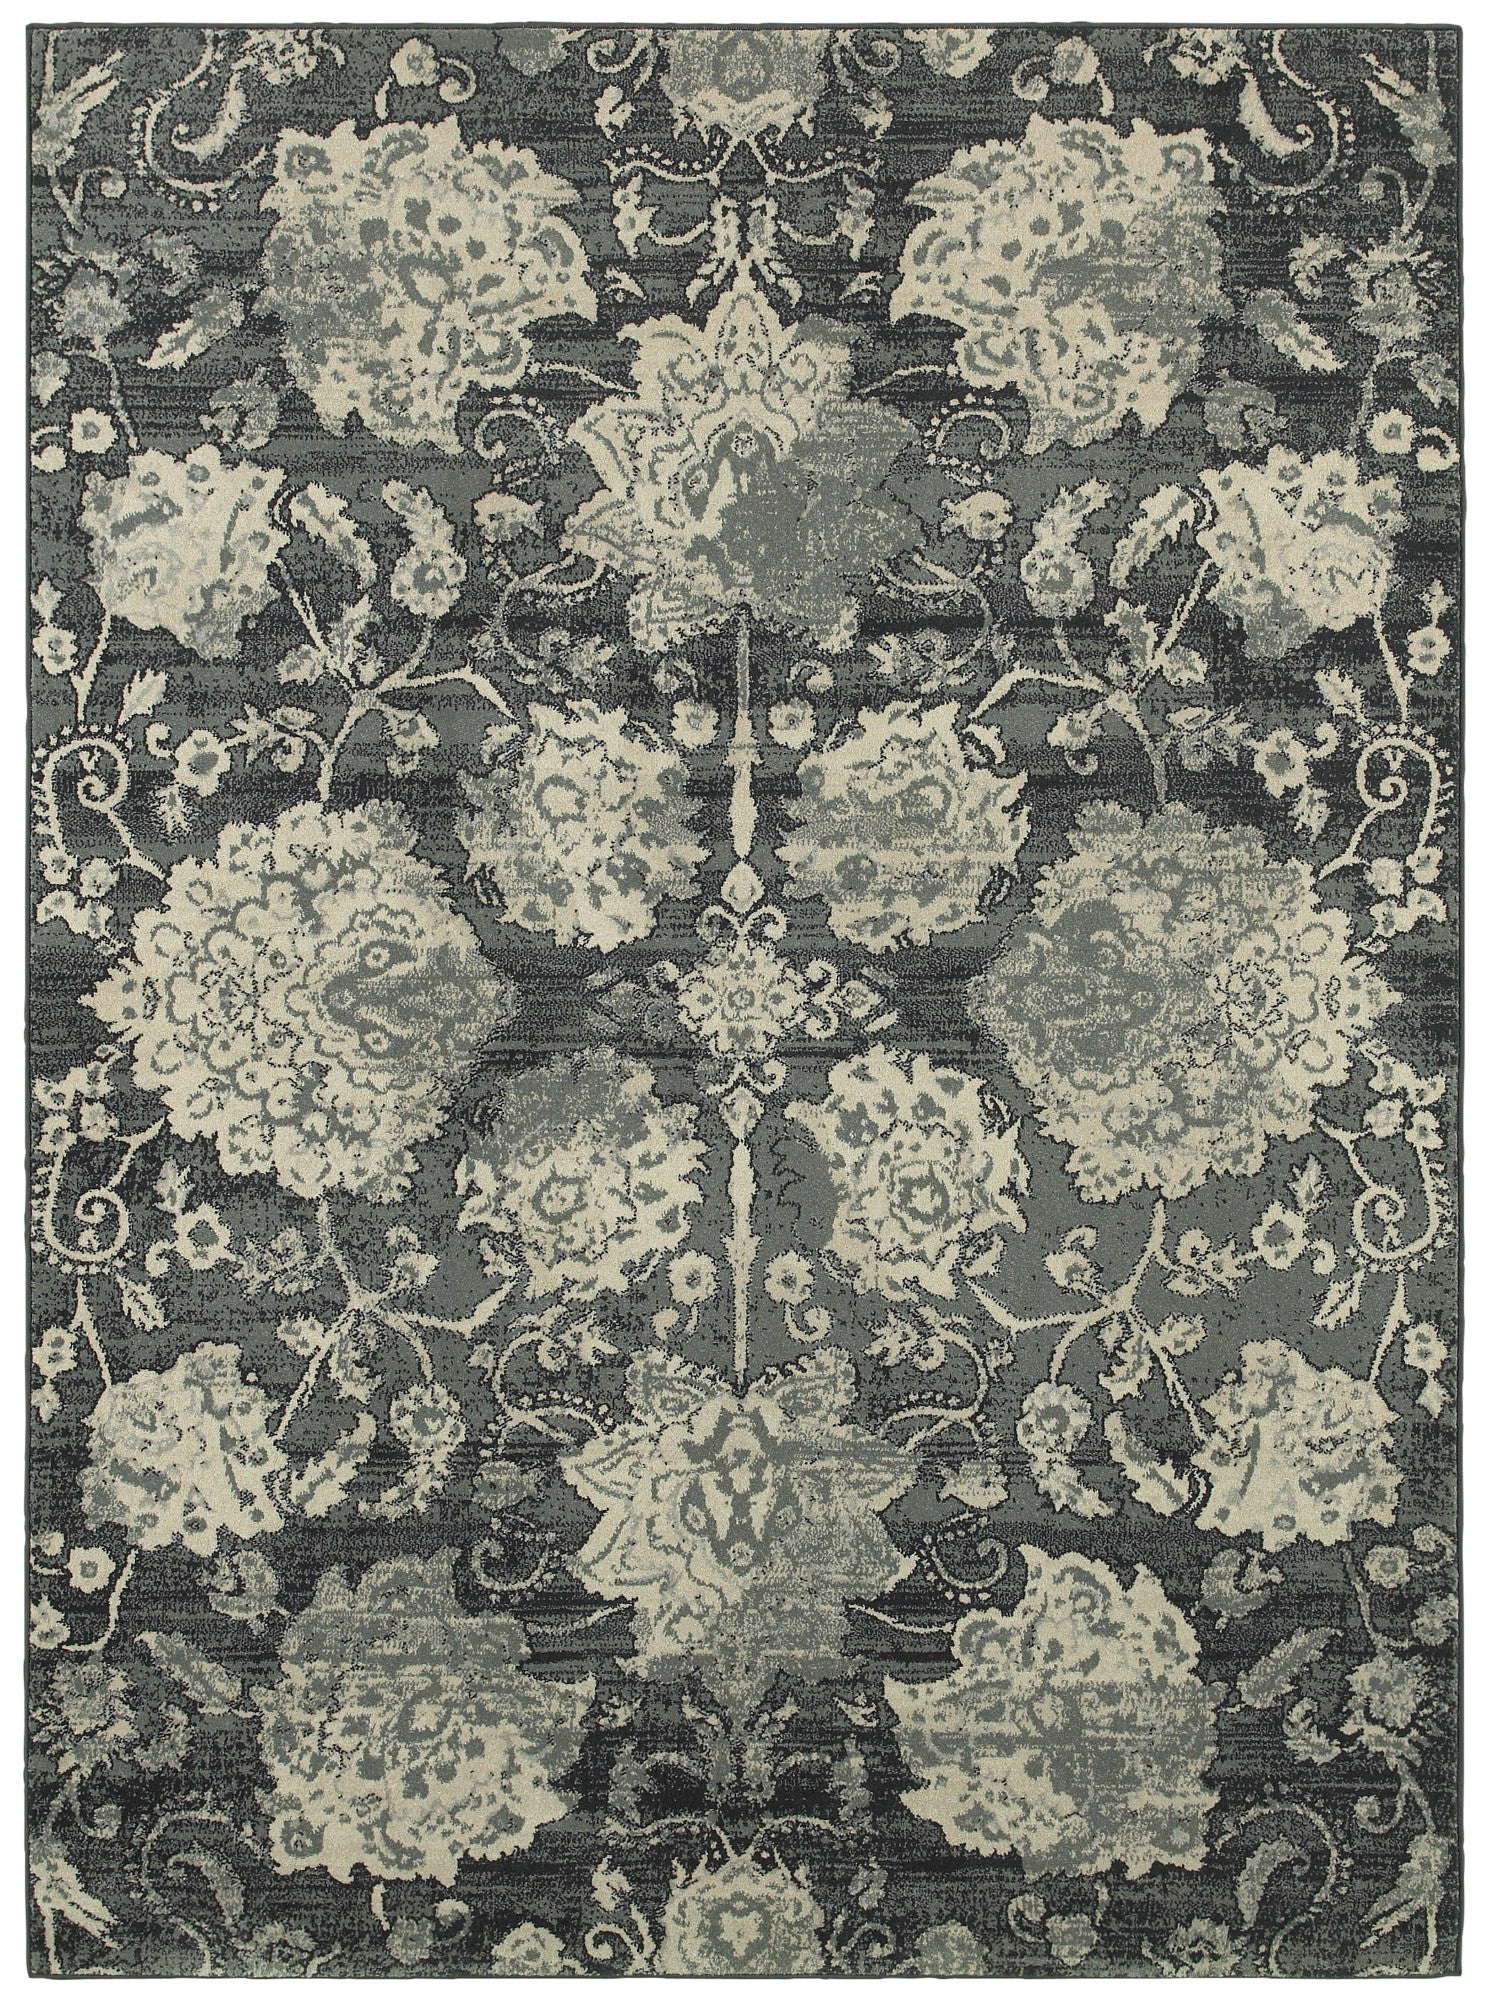 LR Resources Antigua 80998 Blue/Dk Gray Area Rug